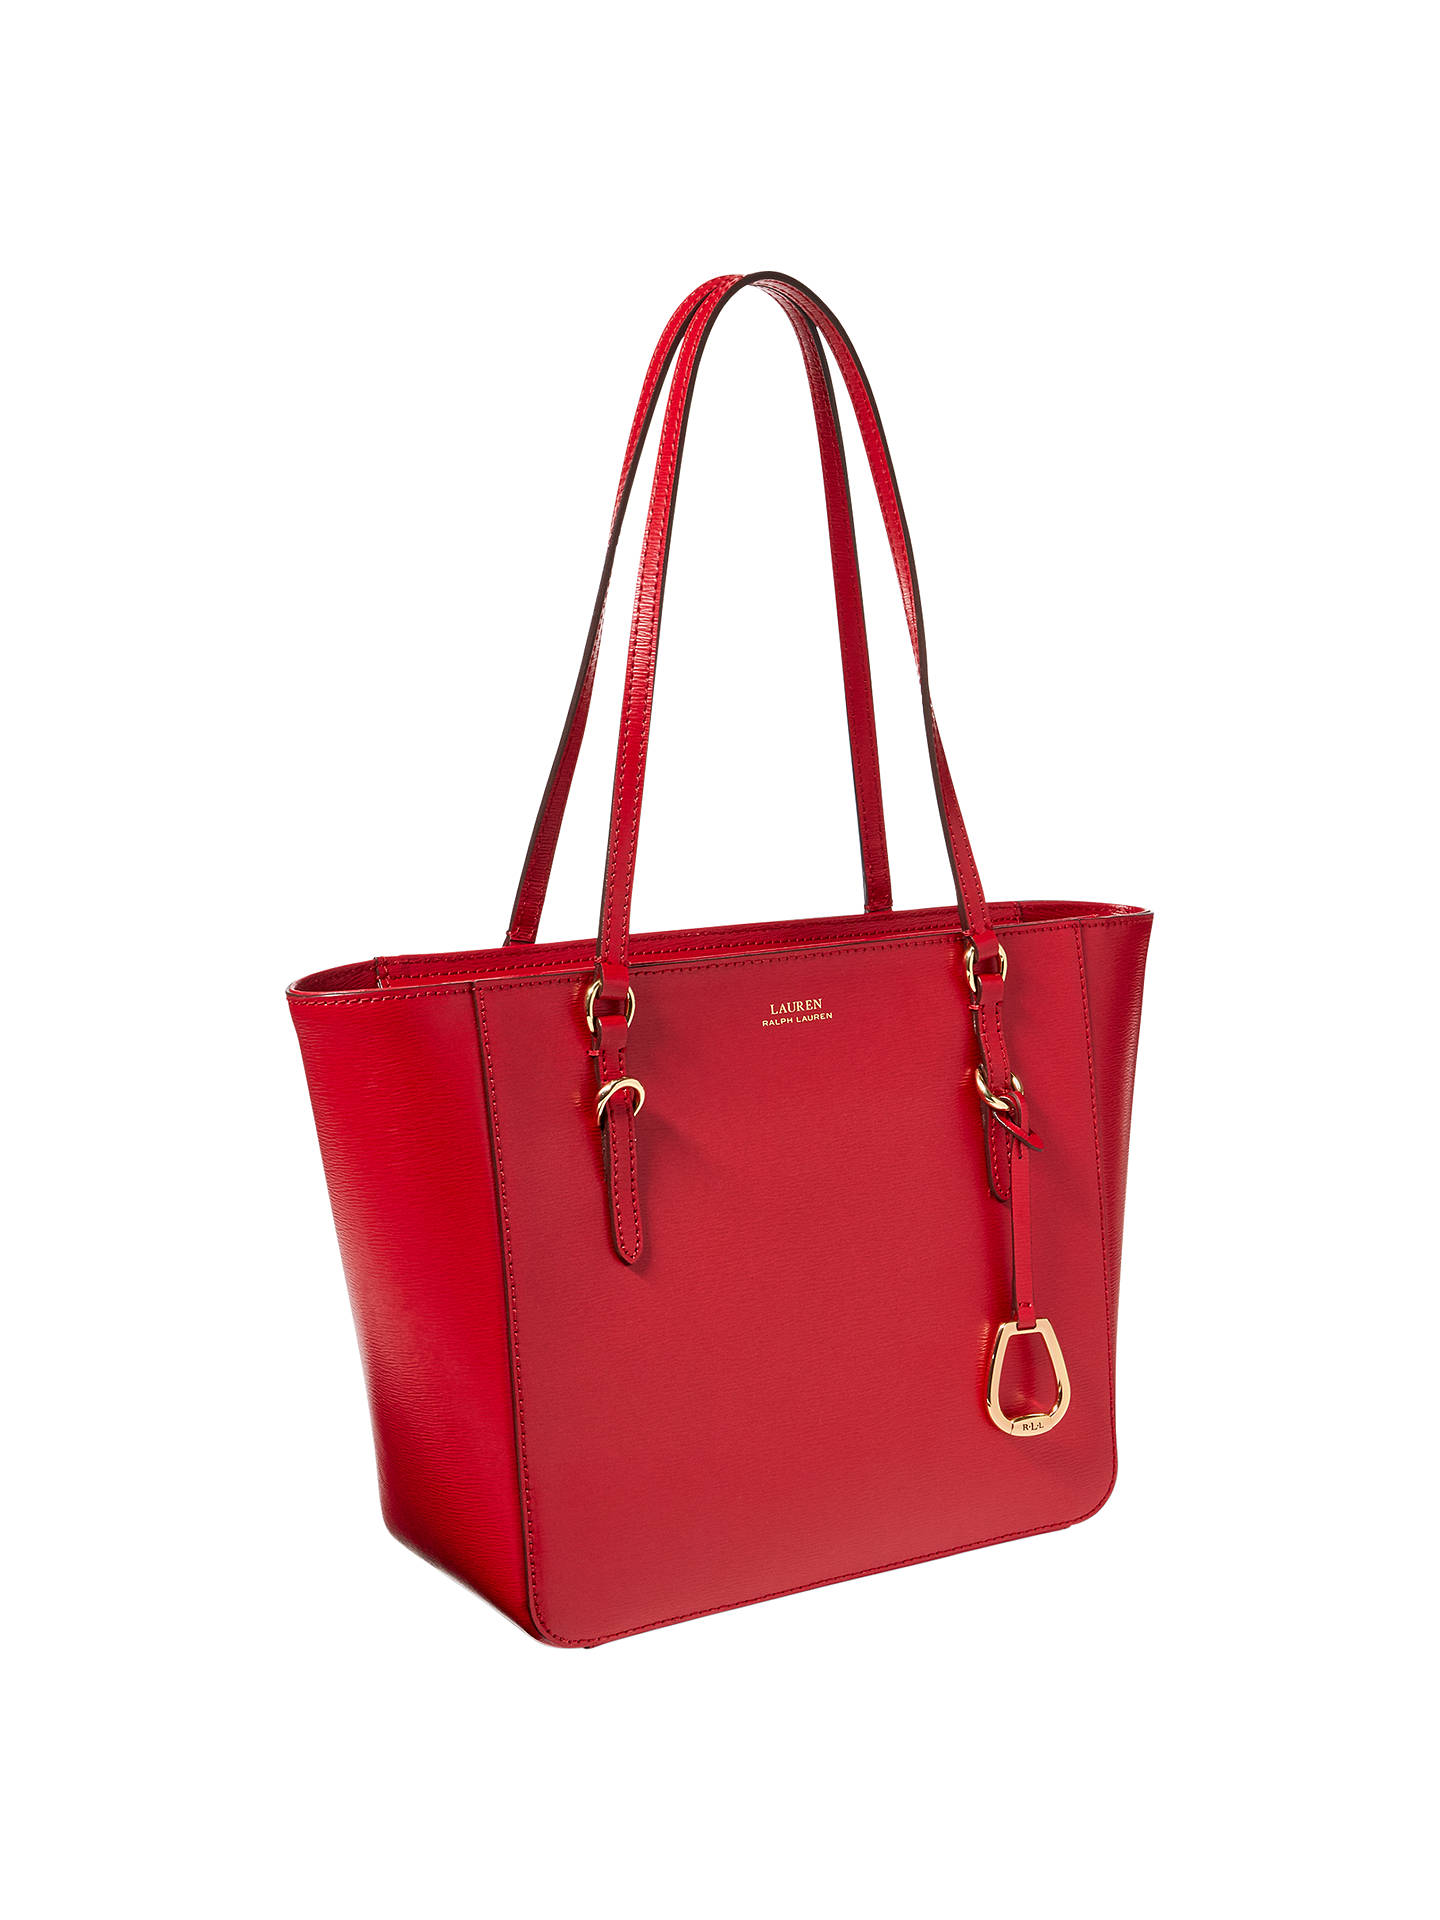 171091099a7 BuyLauren Ralph Lauren Saffiano Leather Shopper Tote Bag, Red Online at  johnlewis.com ...